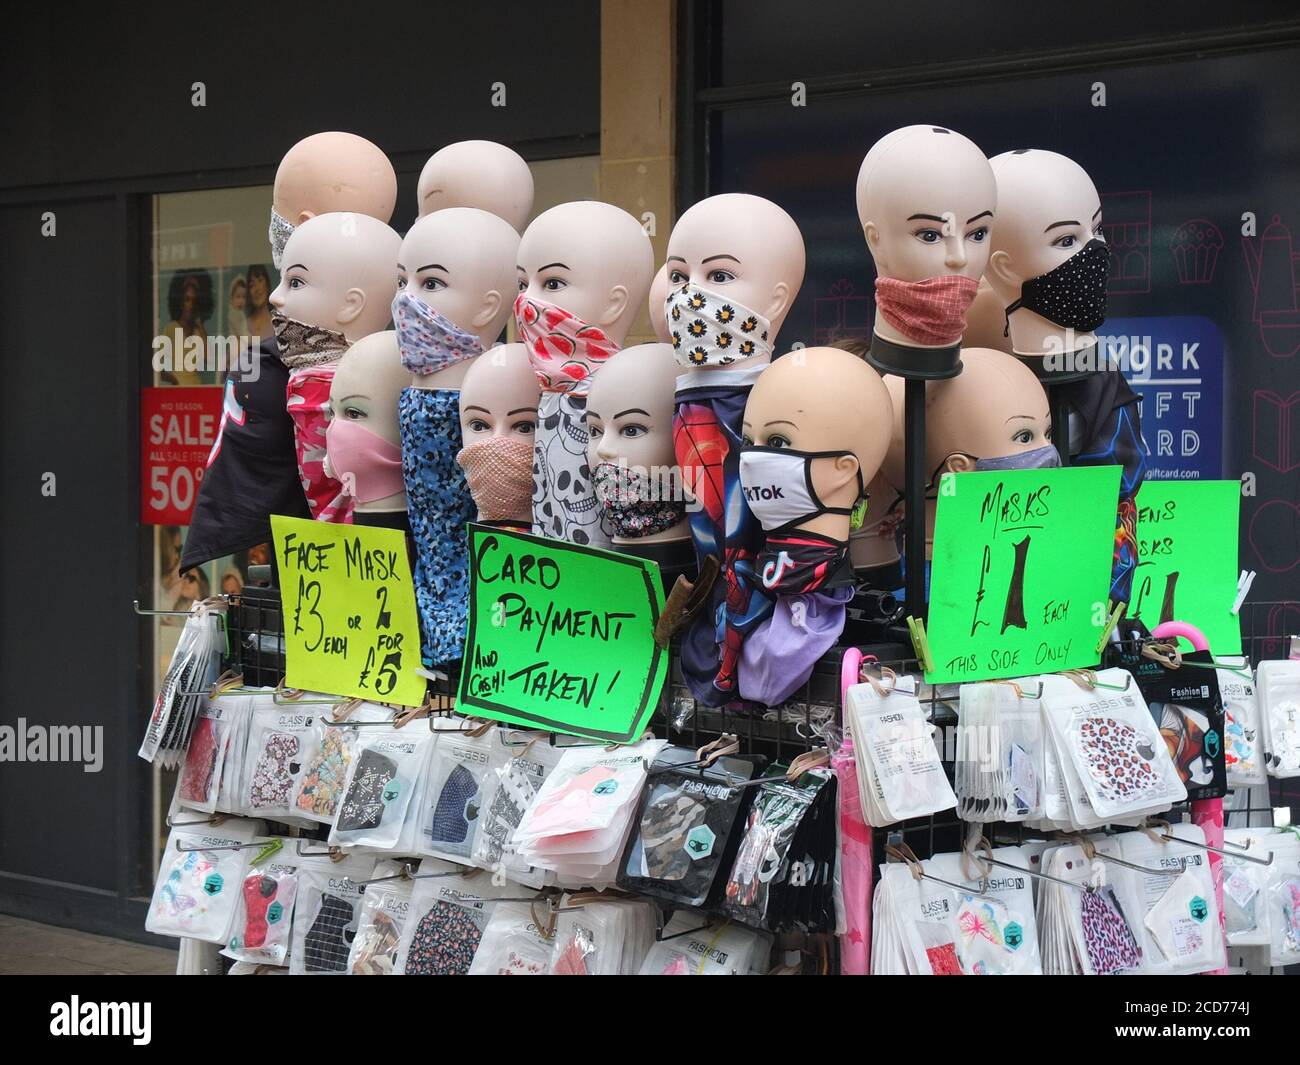 Street market stall with mannequin heads selling a variety of face coverings and masks to protect from spreading Coronavirus in York, UK Stock Photo